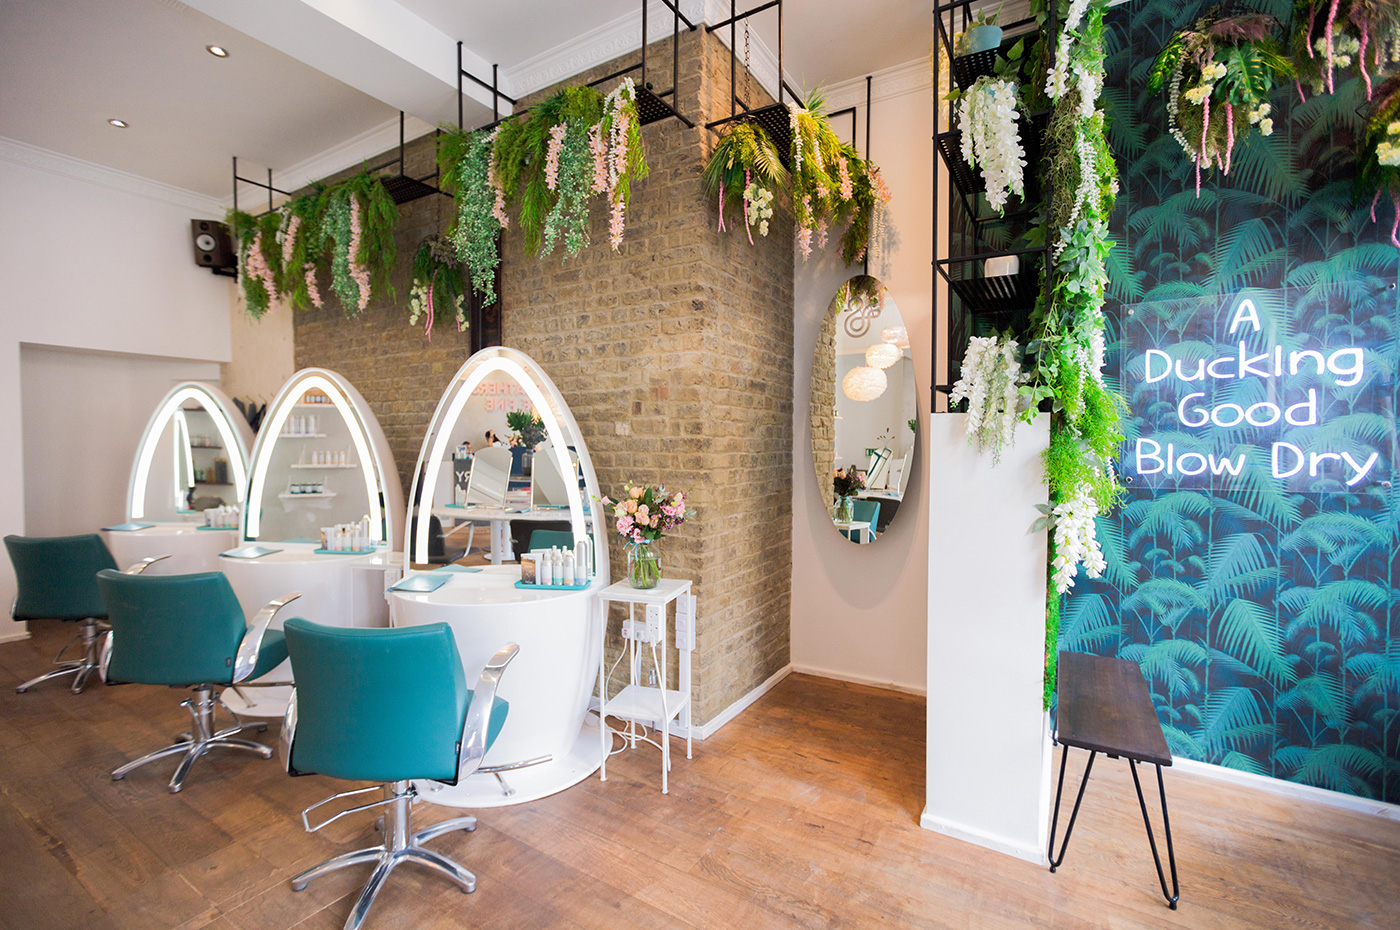 Duck & Dry Blow-dry Bar London Hen Party Blow Dry Package